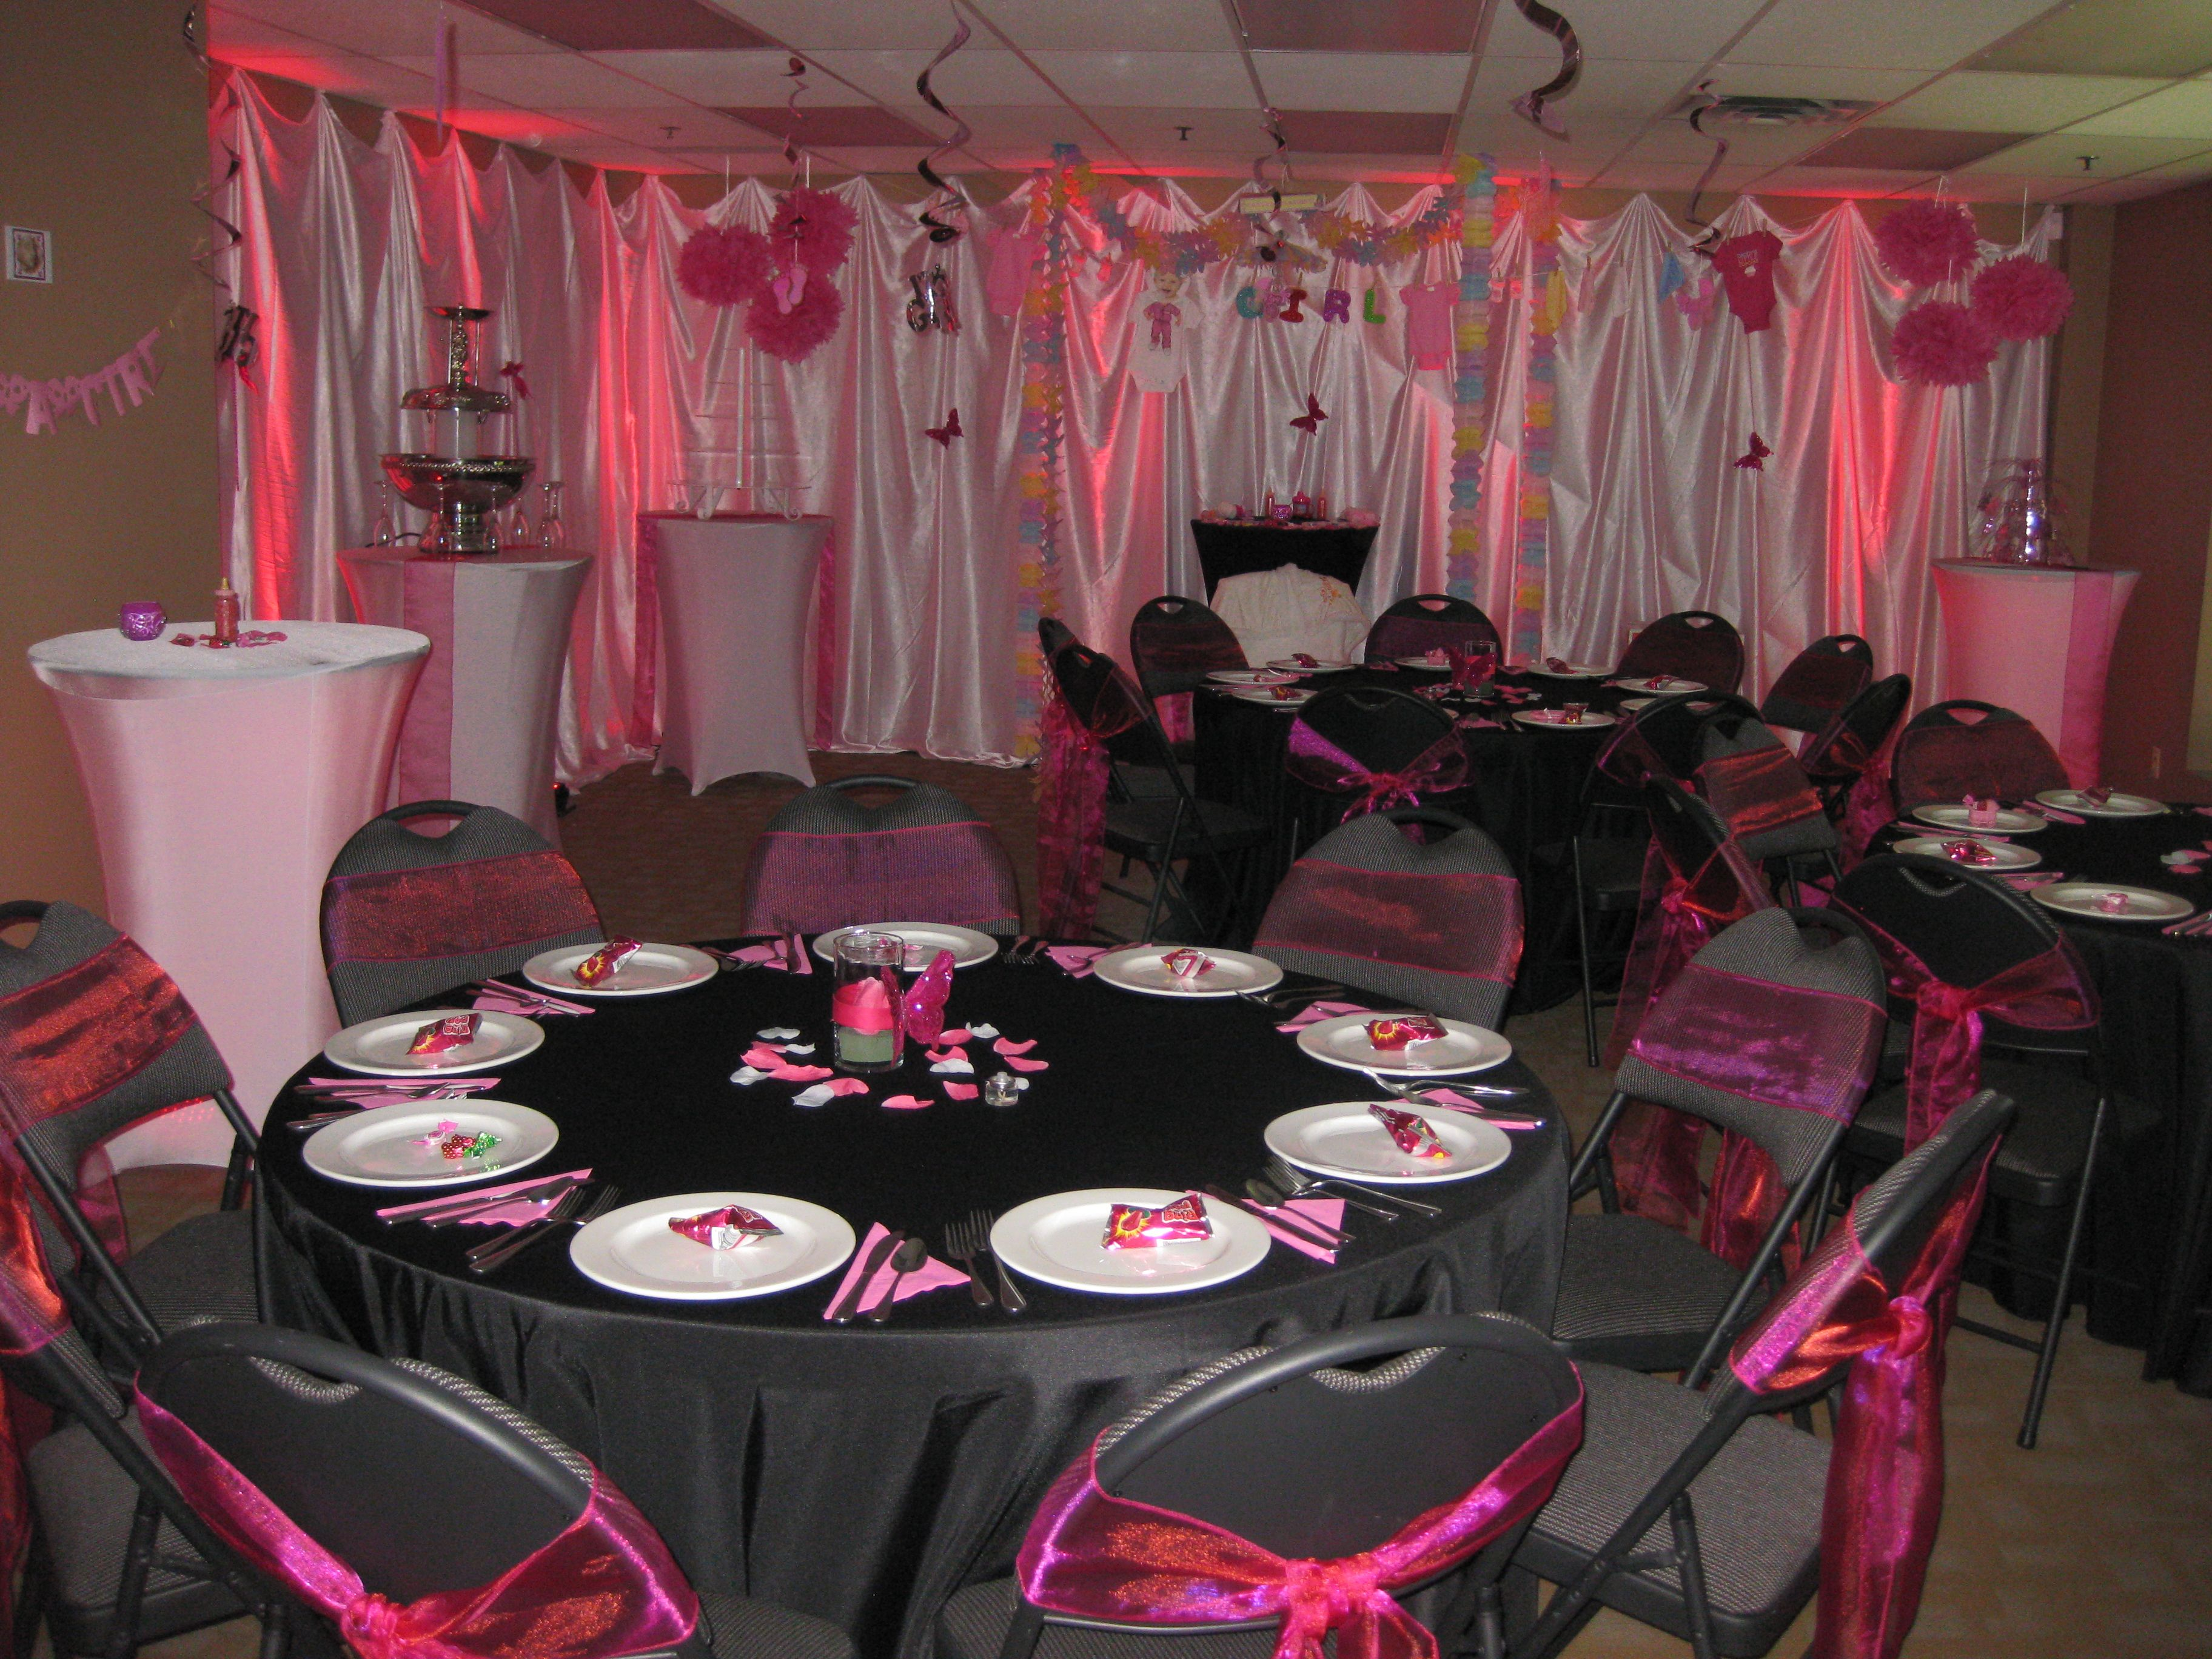 Pin On Event Draping